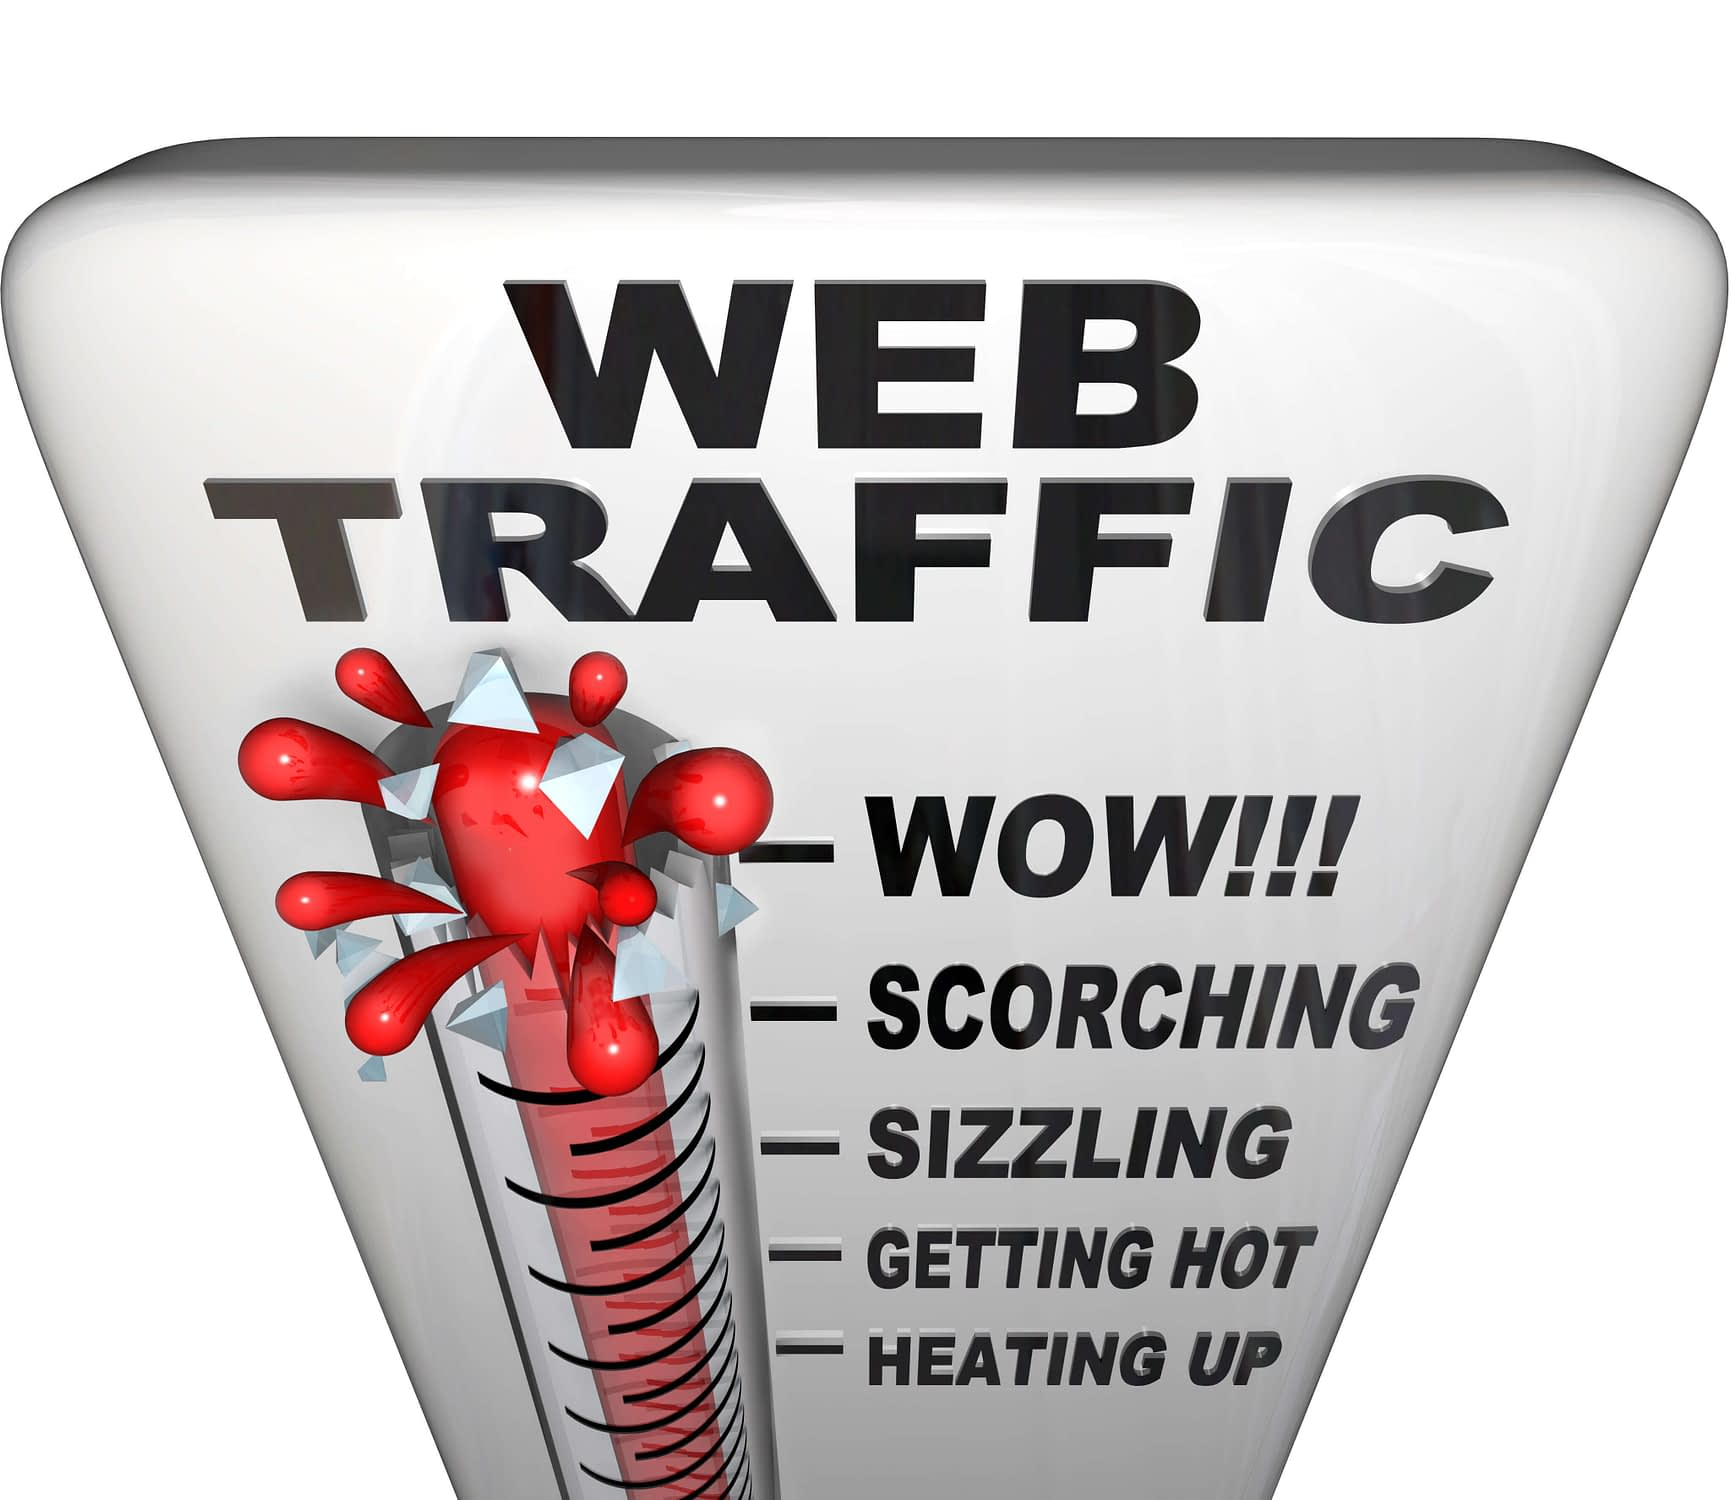 How much web traffic do you get?